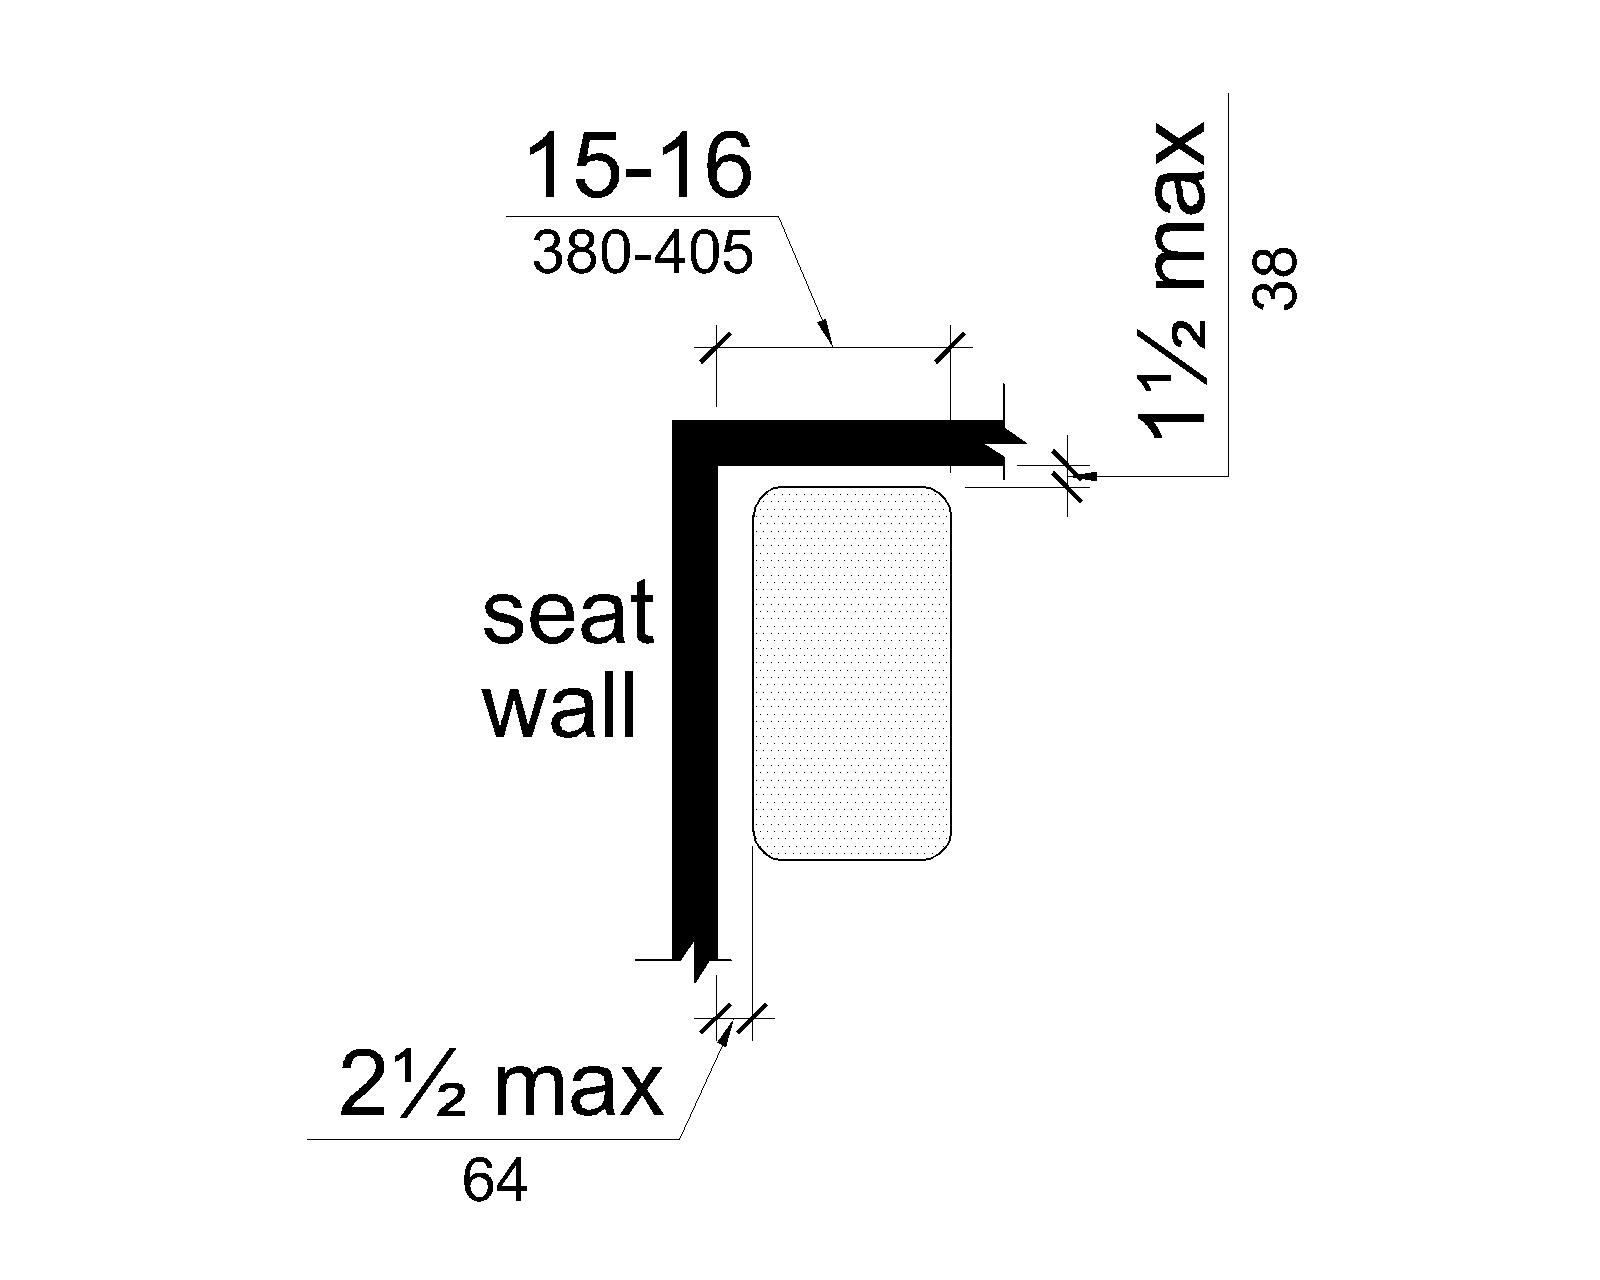 The rear edge is 2½ inches (64 mm) maximum and the front edge 15 to 16 inches (380 to 405 mm) from the seat wall. The side edge is 1½ inches (38 mm) maximum from the back wall.